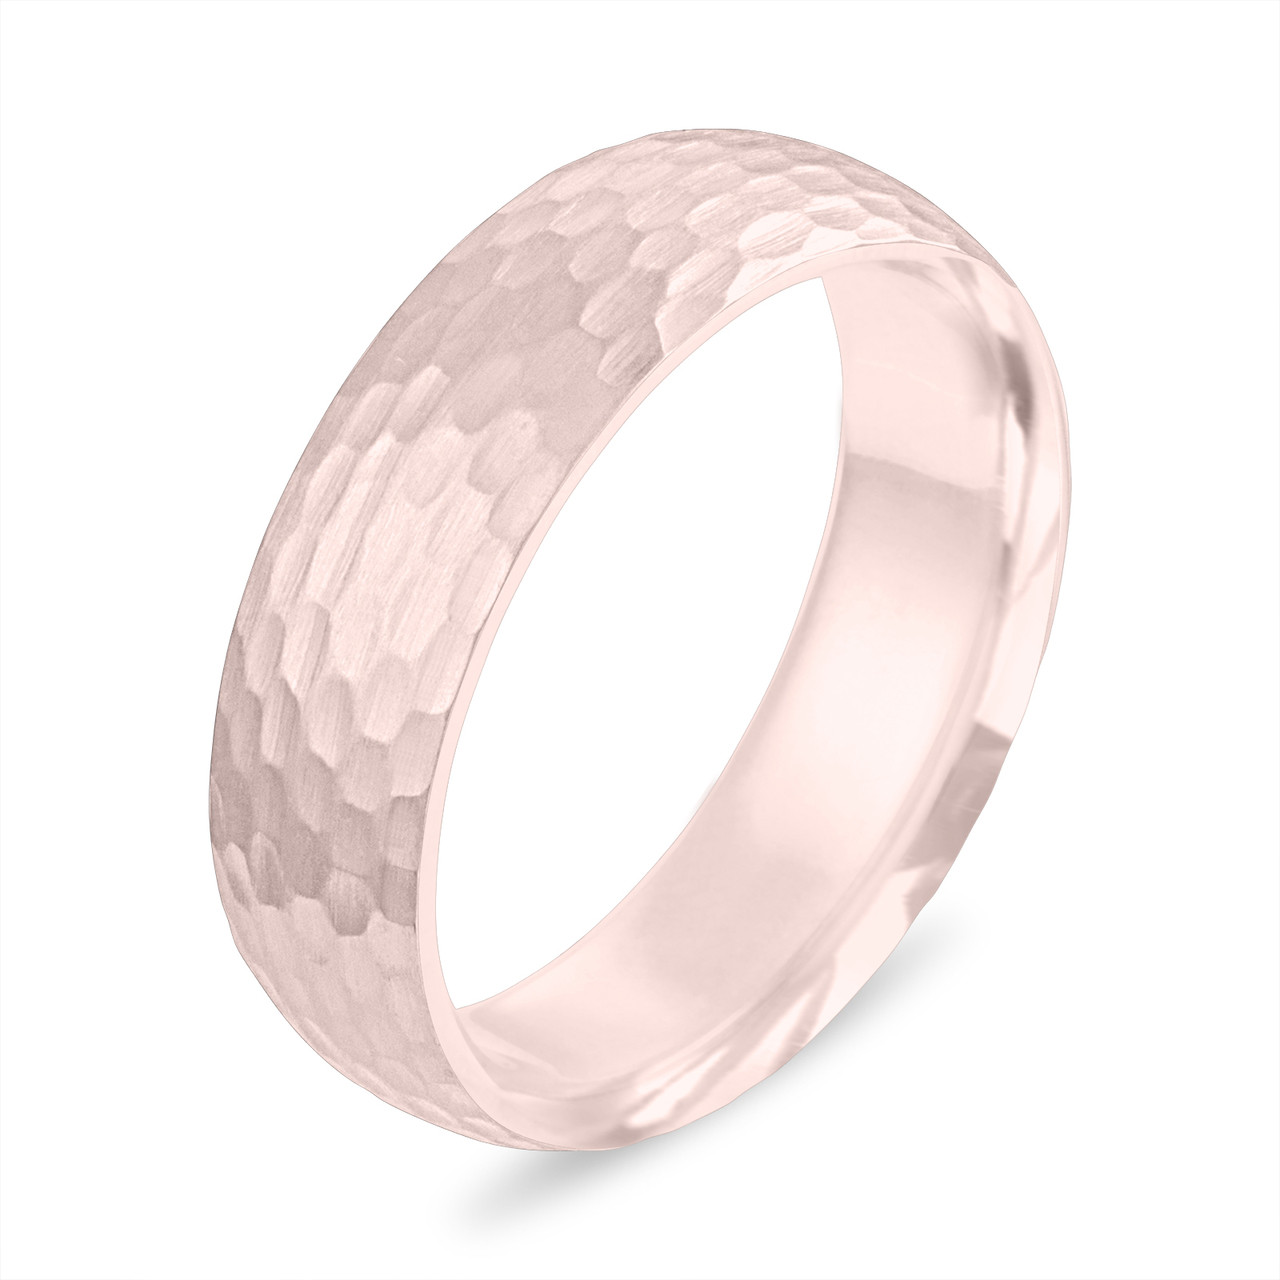 Hammered Finish Wedding Band Mens Wedding Ring Rose Gold Womens